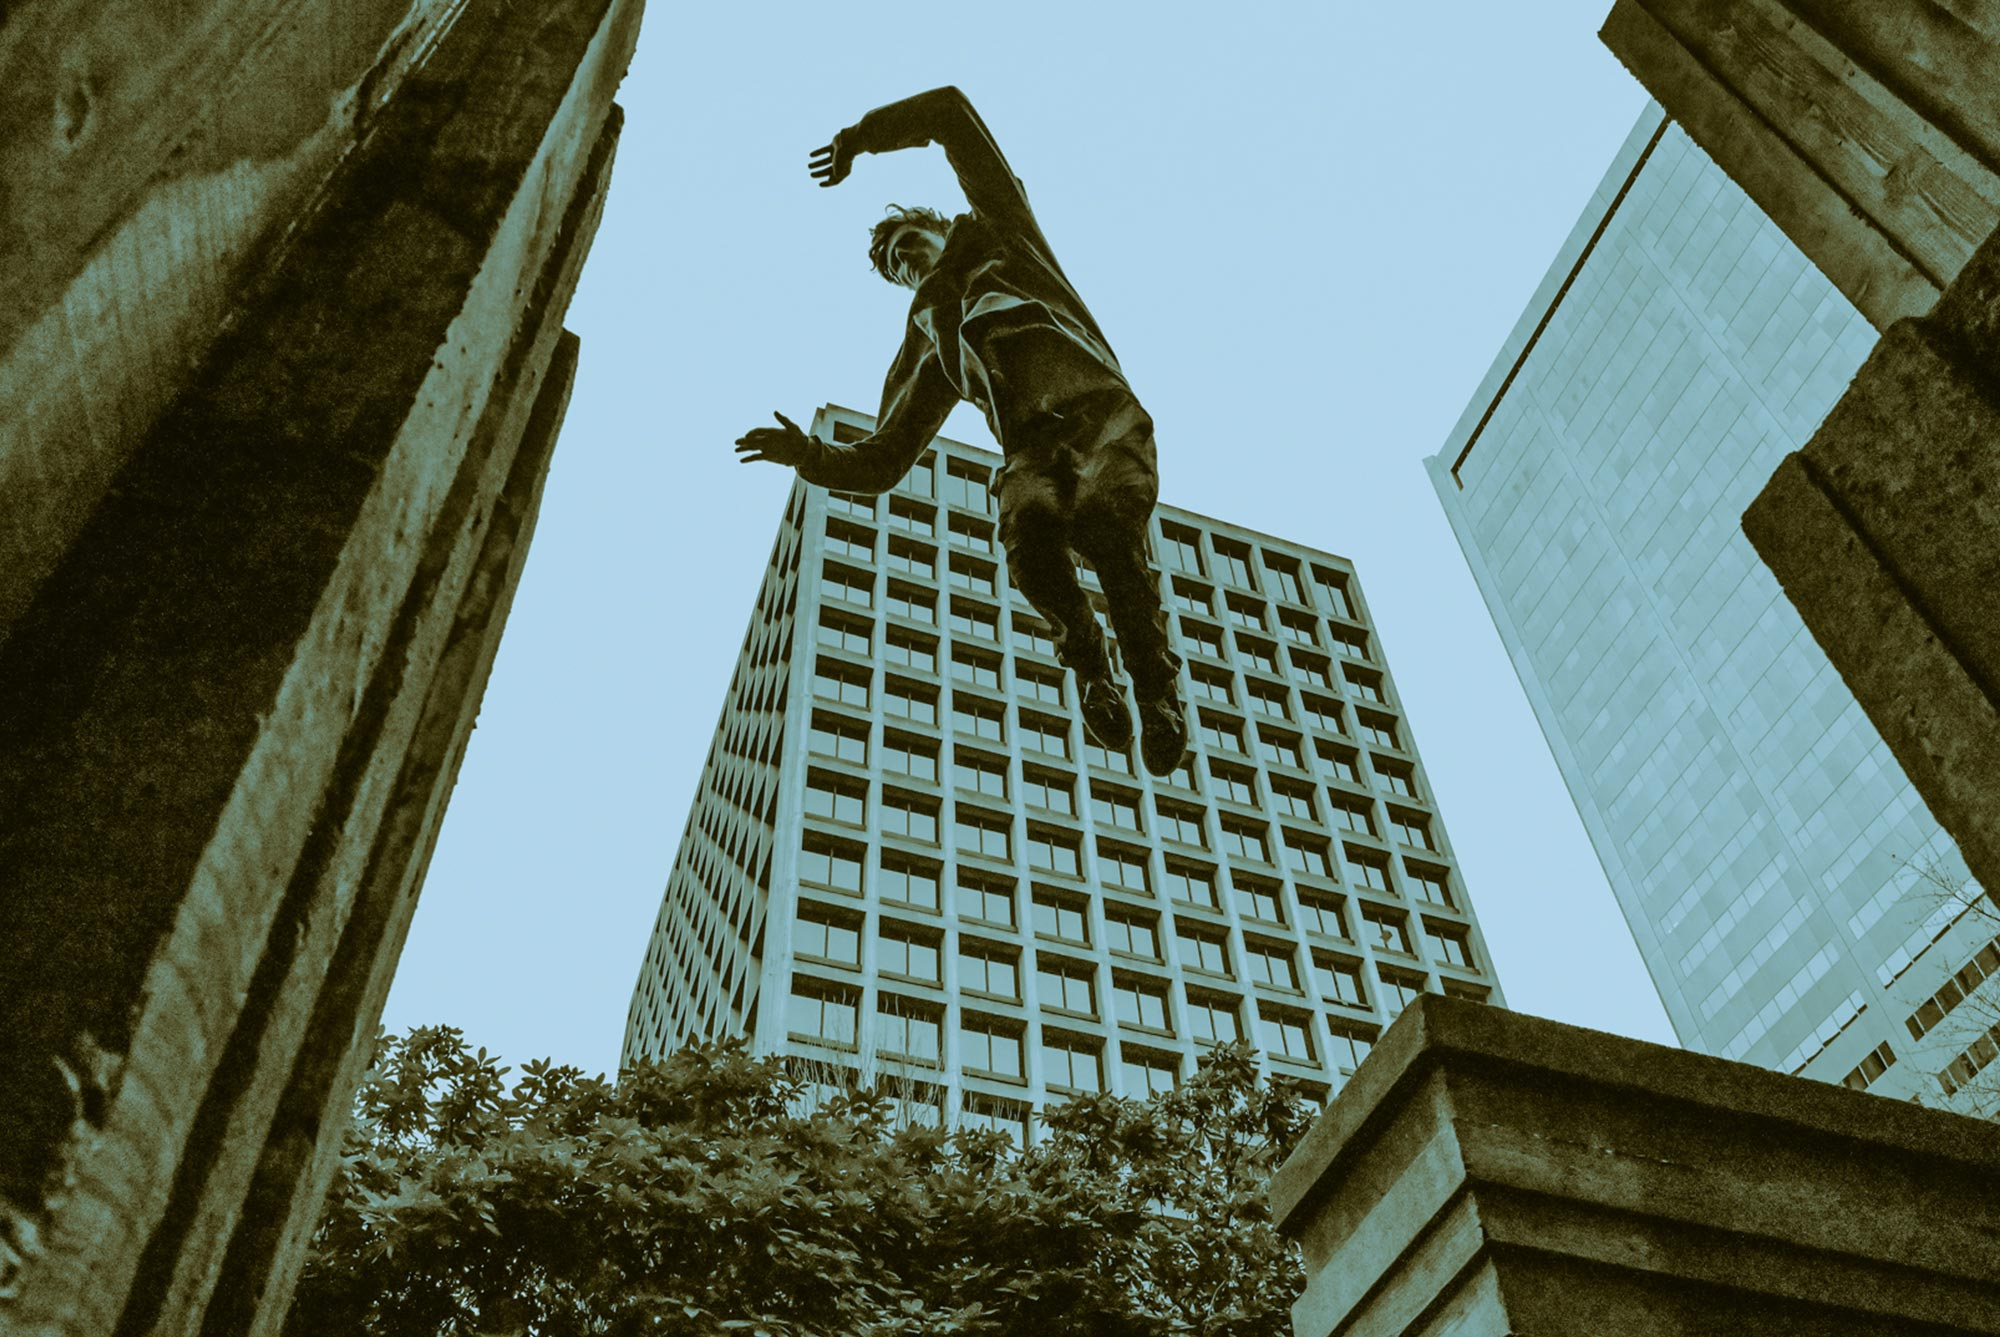 Parkour photo, by Gibran Hamdan Seattle photographer